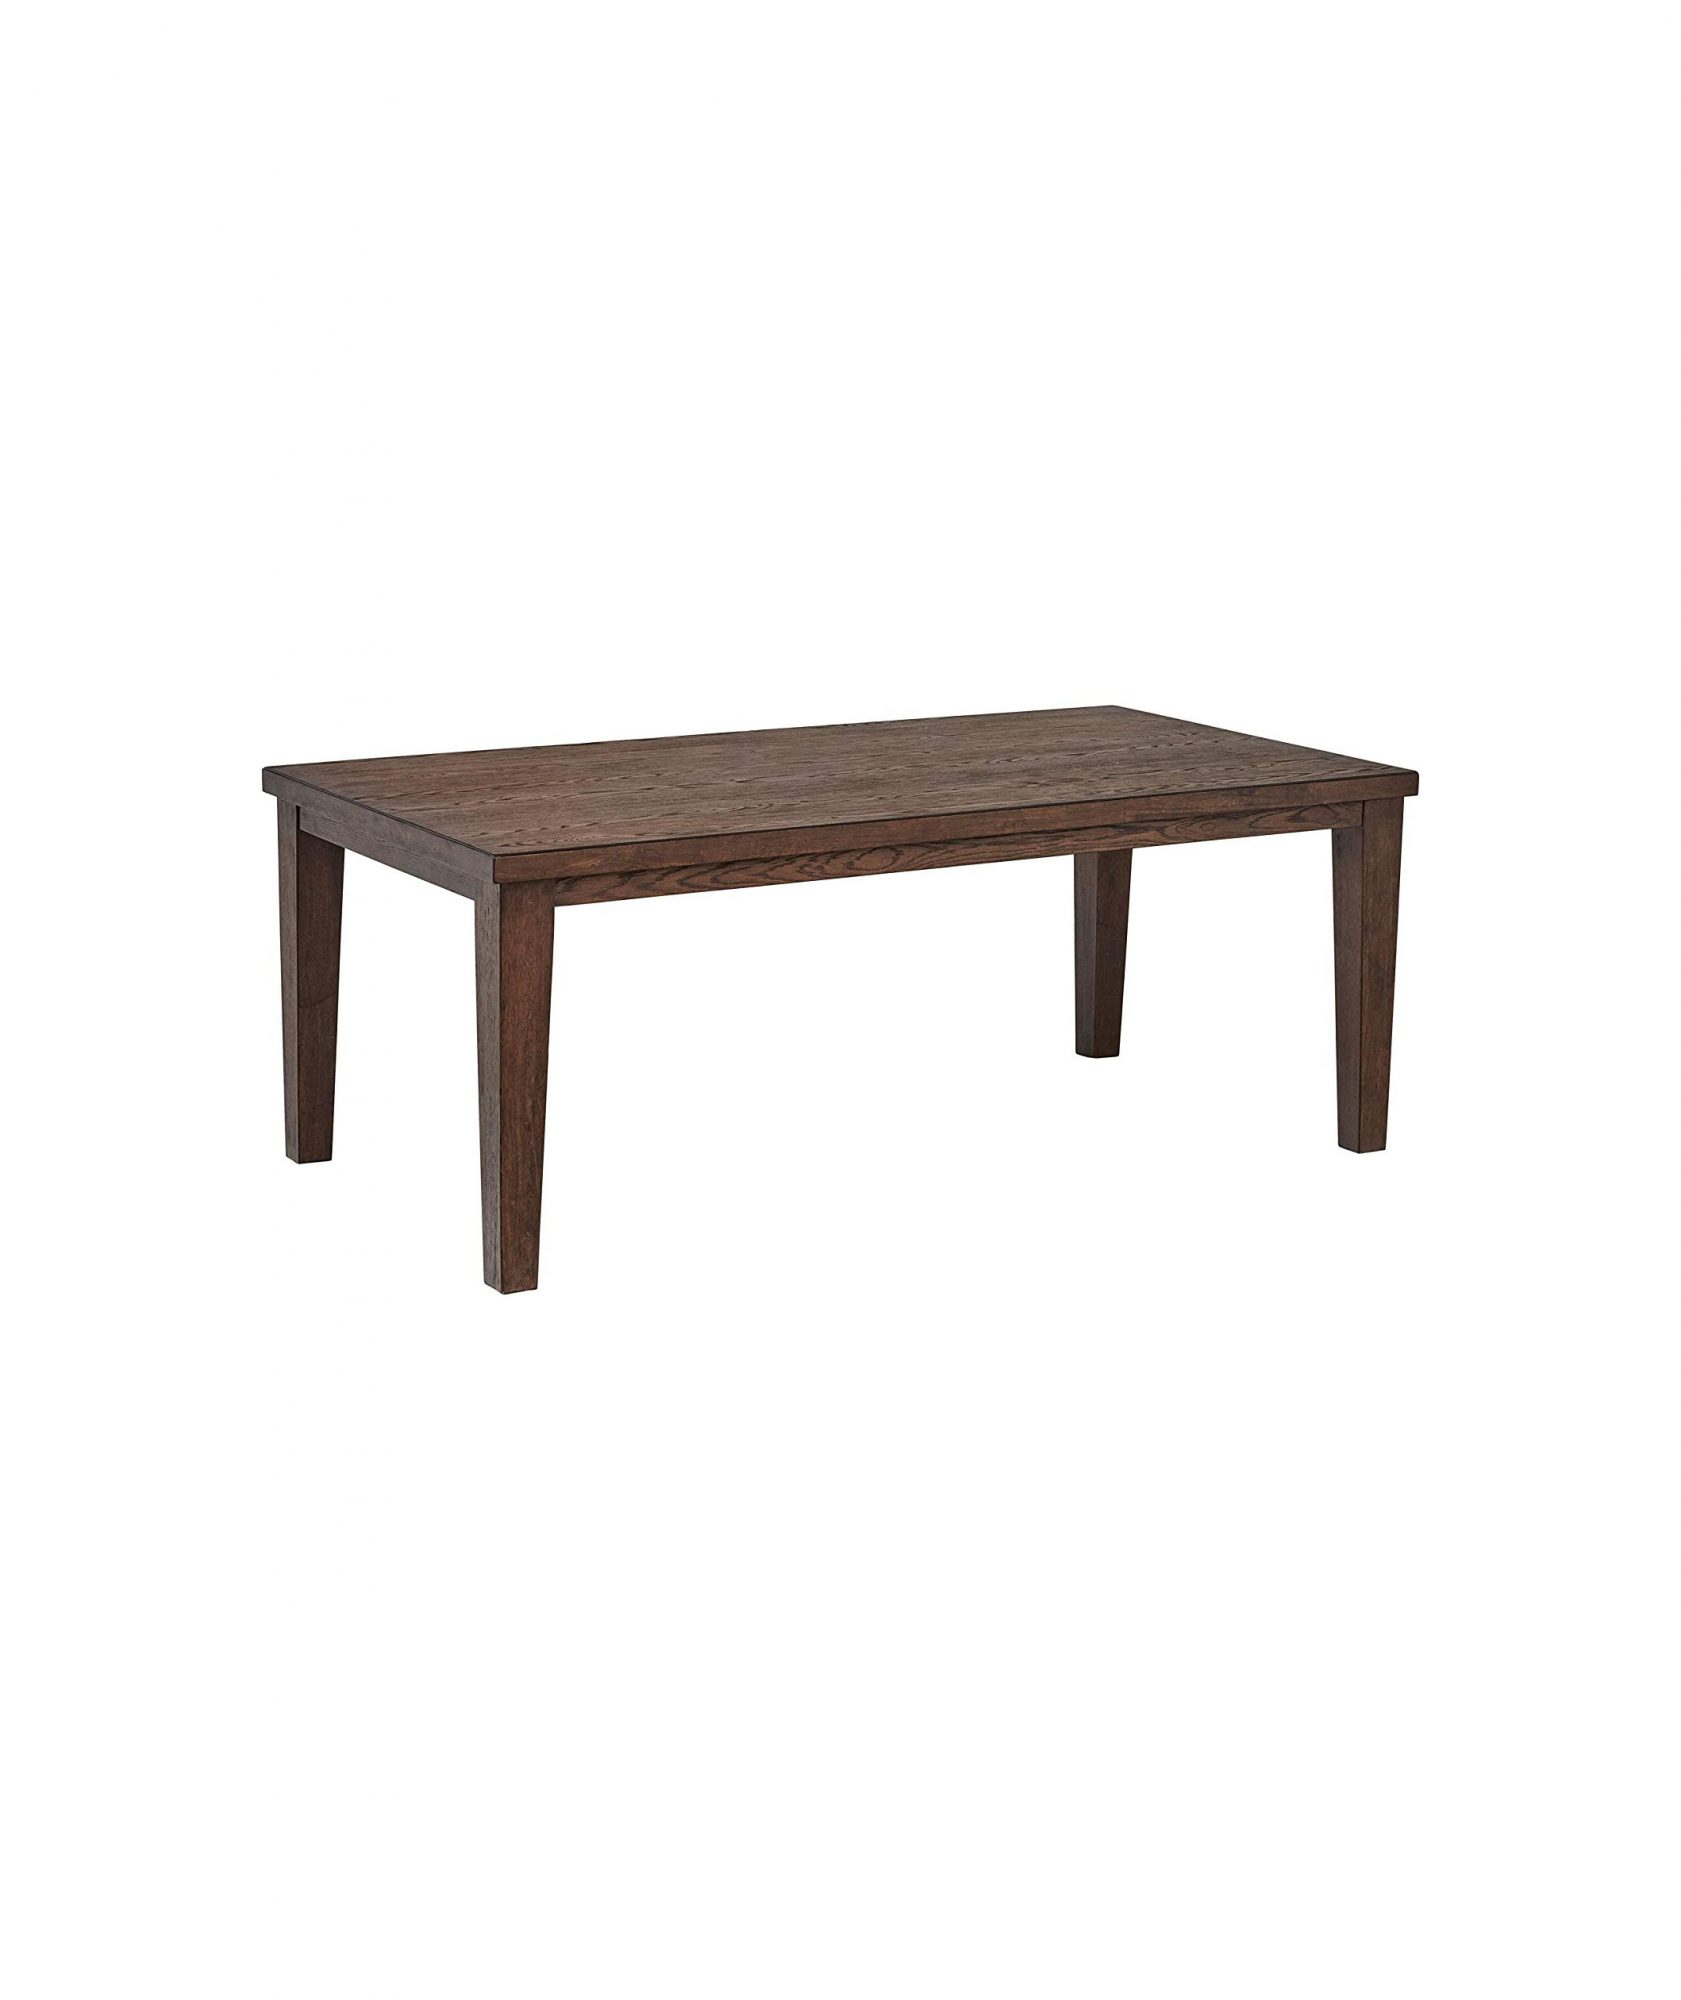 Stone and Beam Amazon Prime Day Table